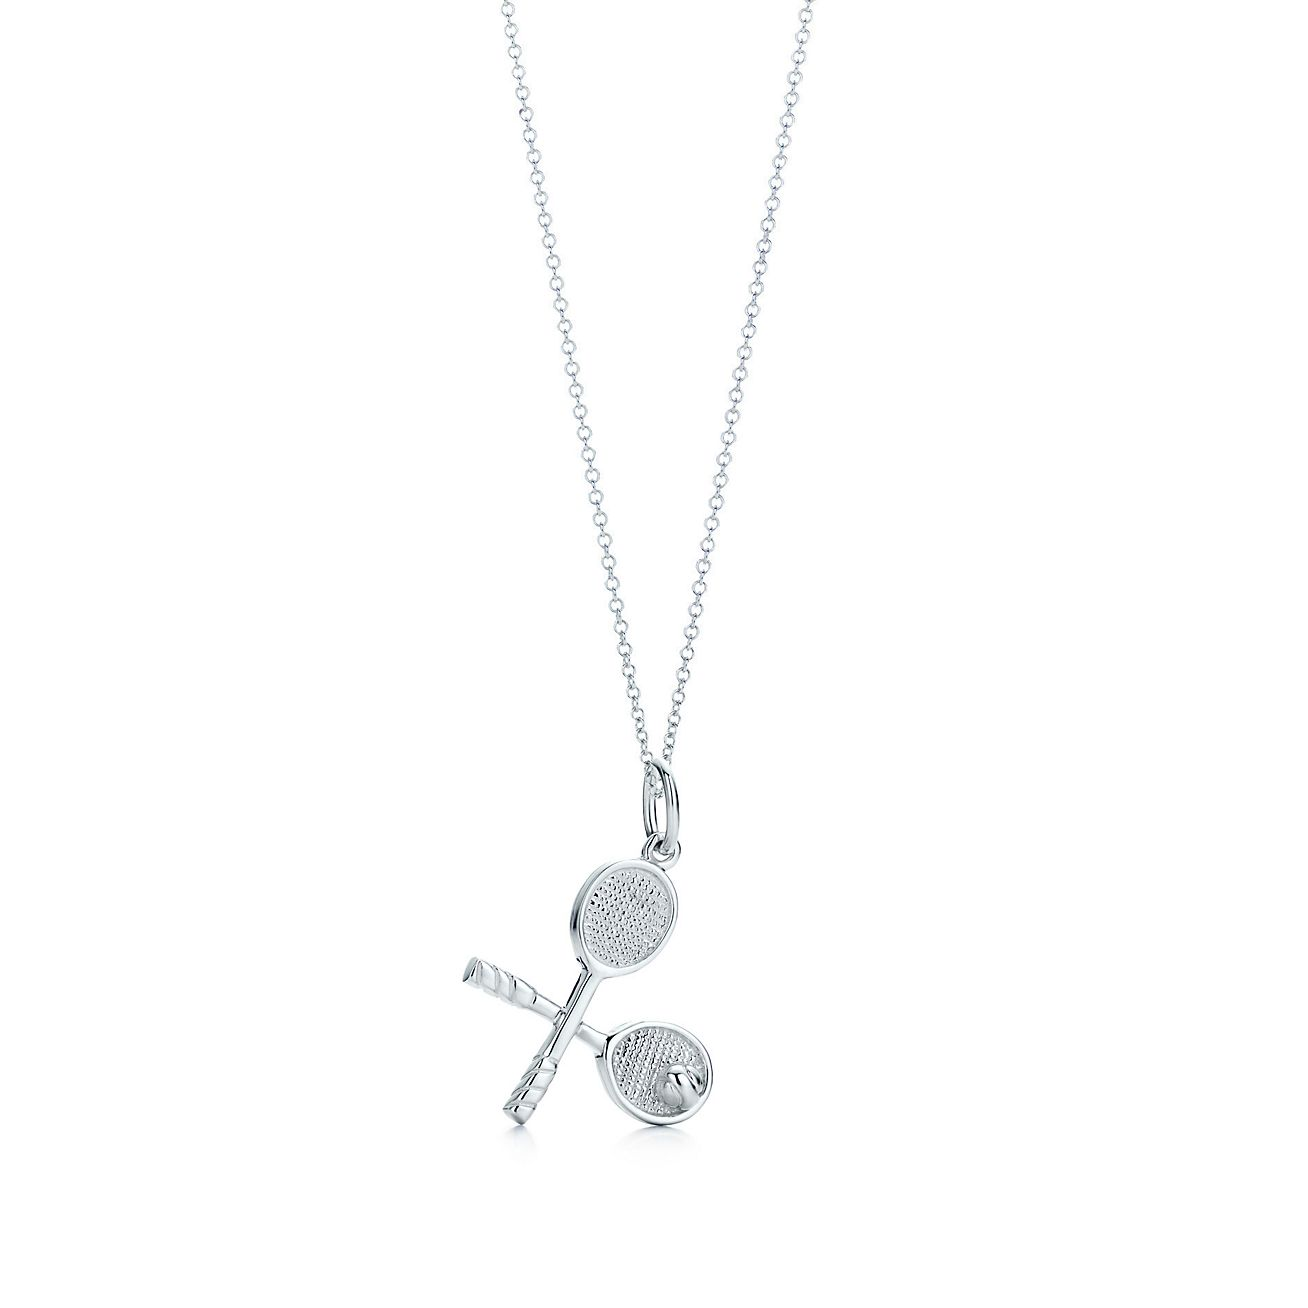 Tennis racquet charm in sterling silver on a chain tiffany co tennis racquet charm and chain mozeypictures Gallery